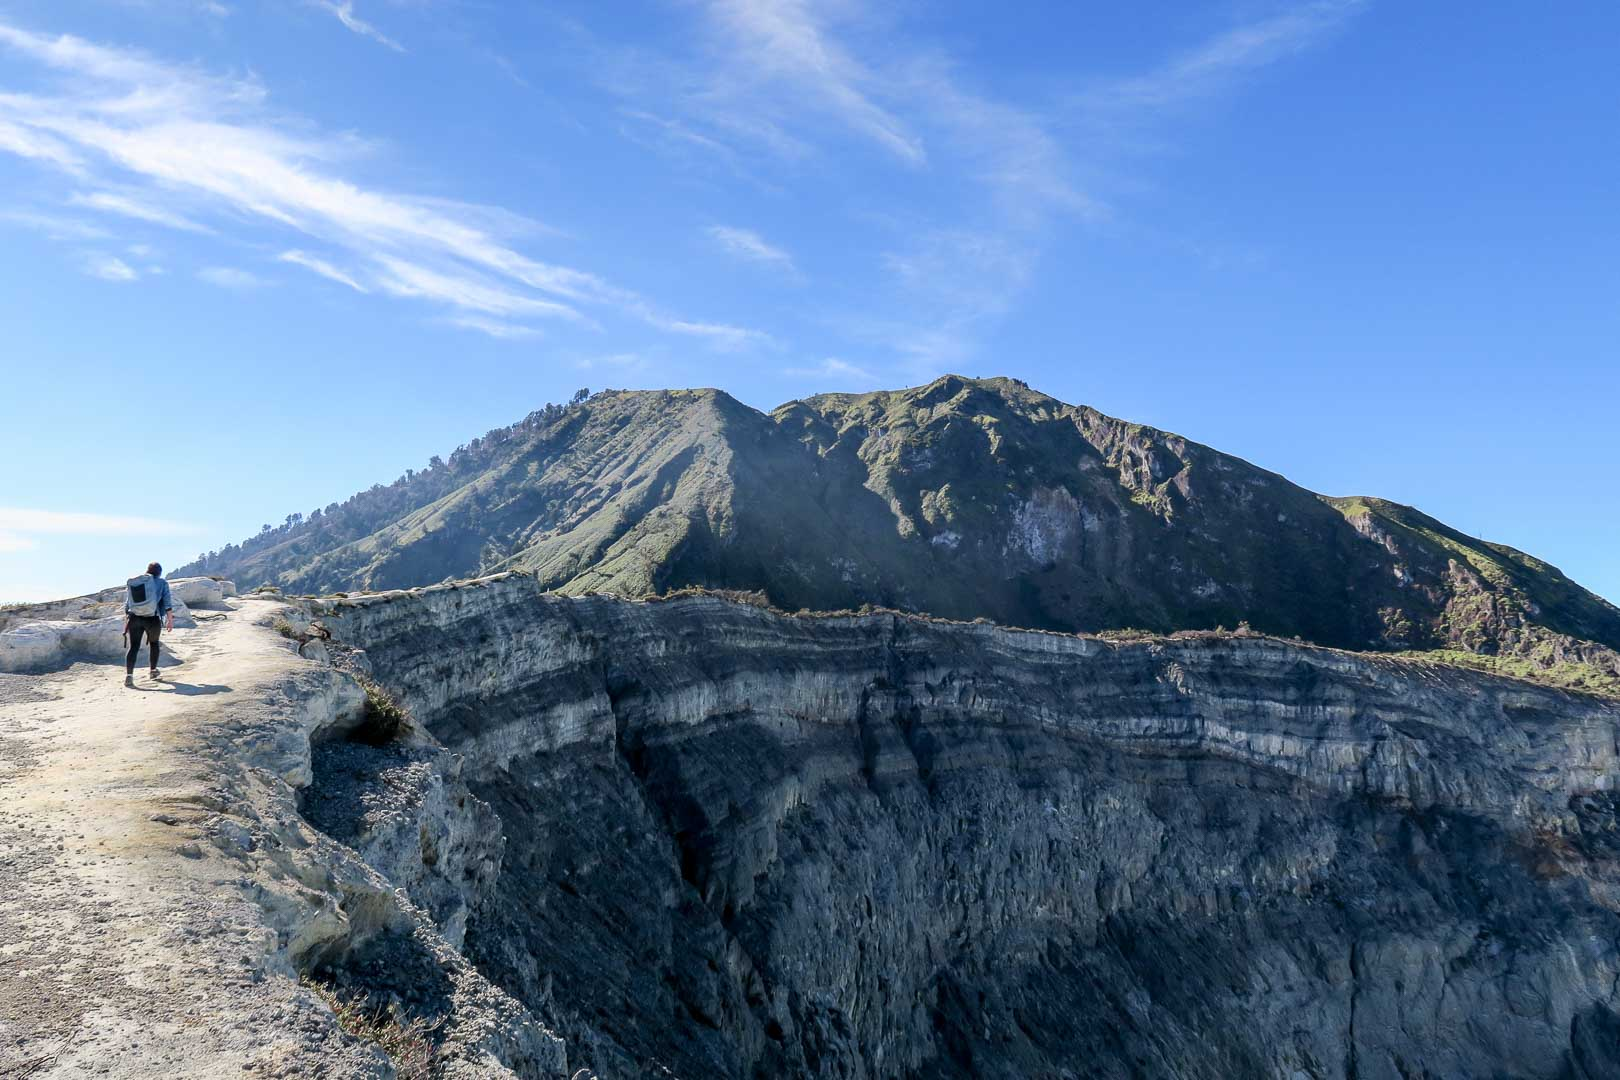 Hiking Mount Ijen